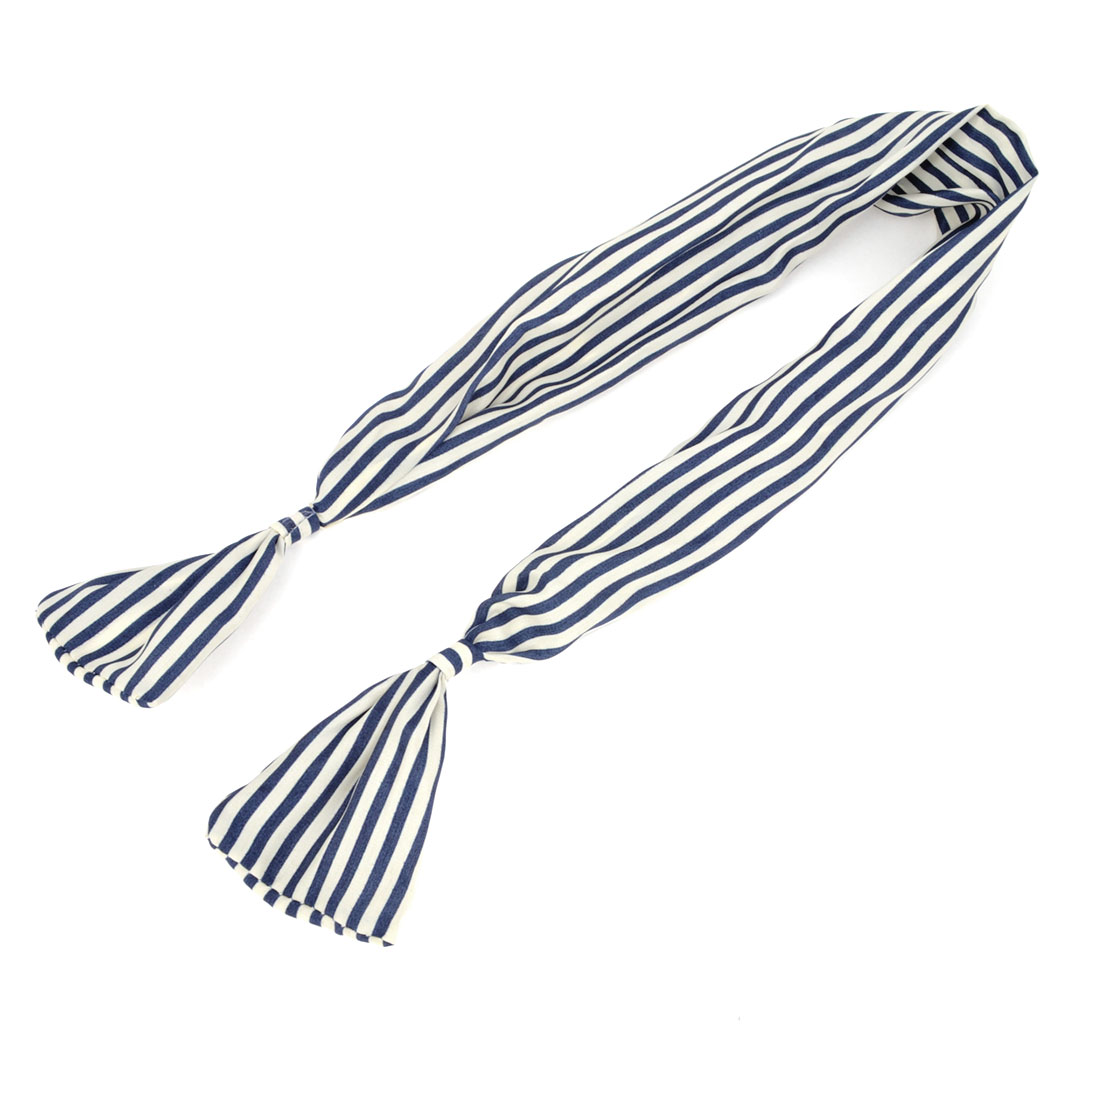 Dark Blue White Streak Pattern Foldable Bunny Ear Hair Band Headwrap for Ladies